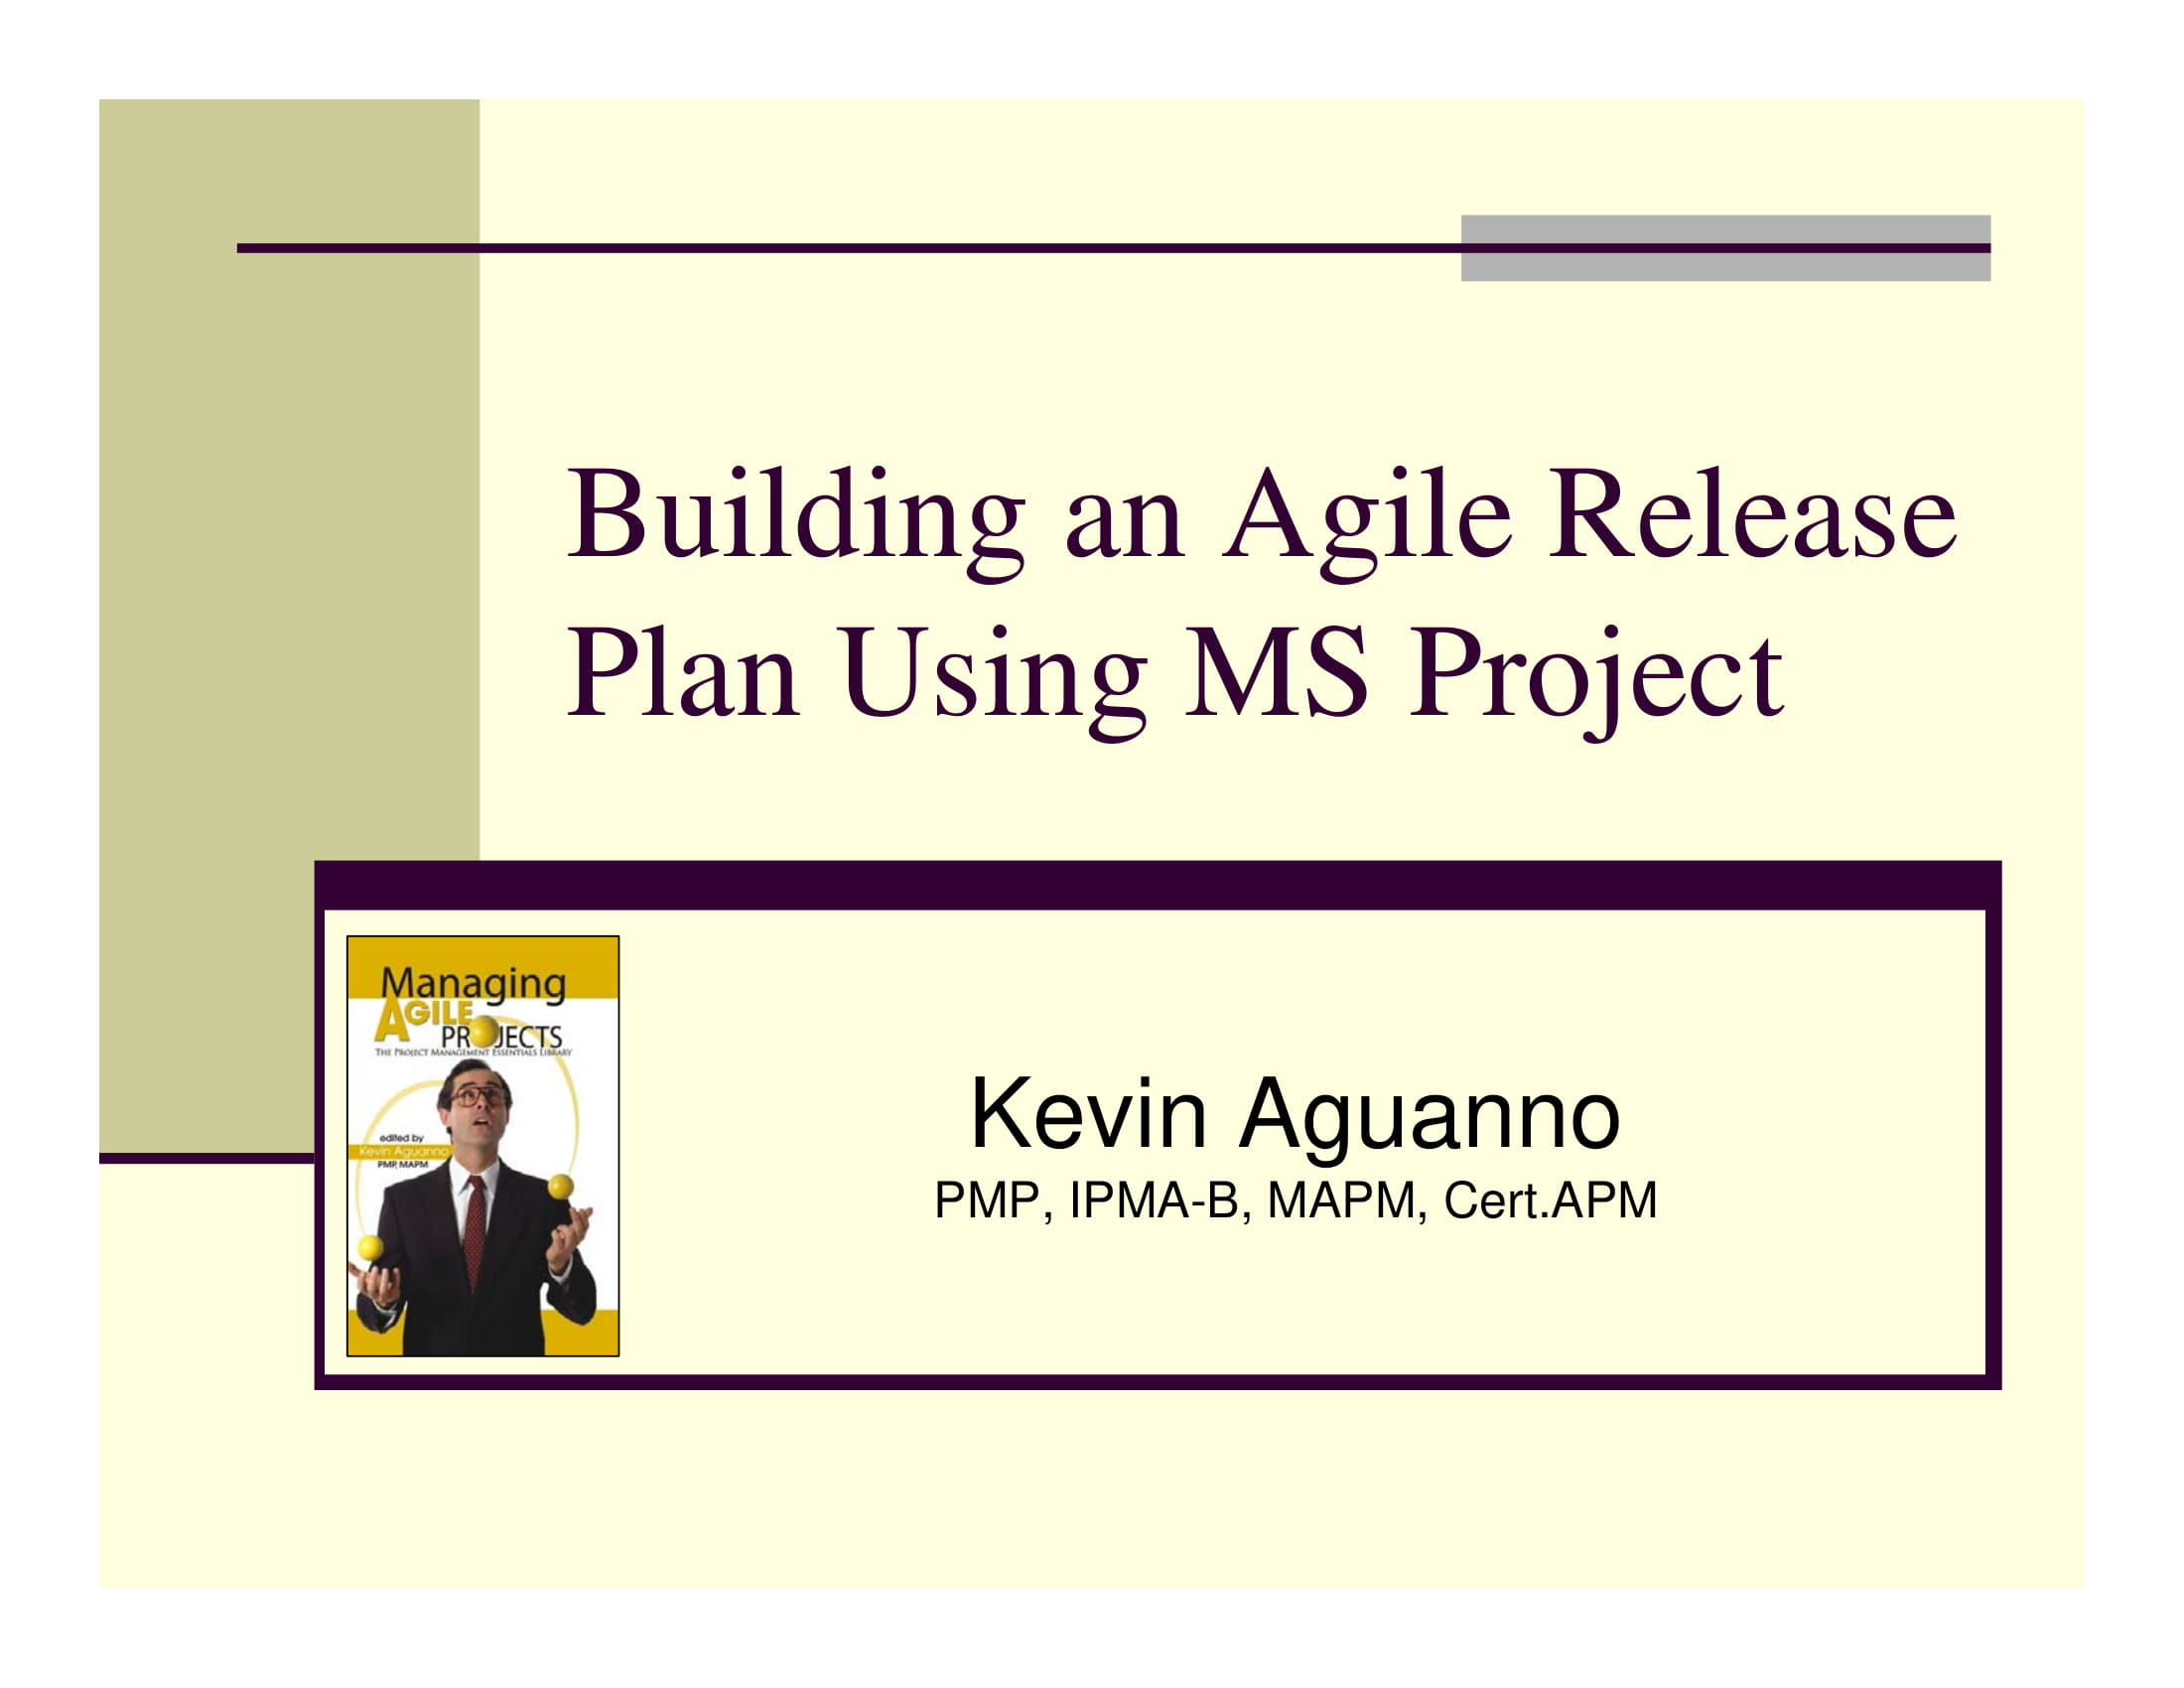 agile release plan example 01